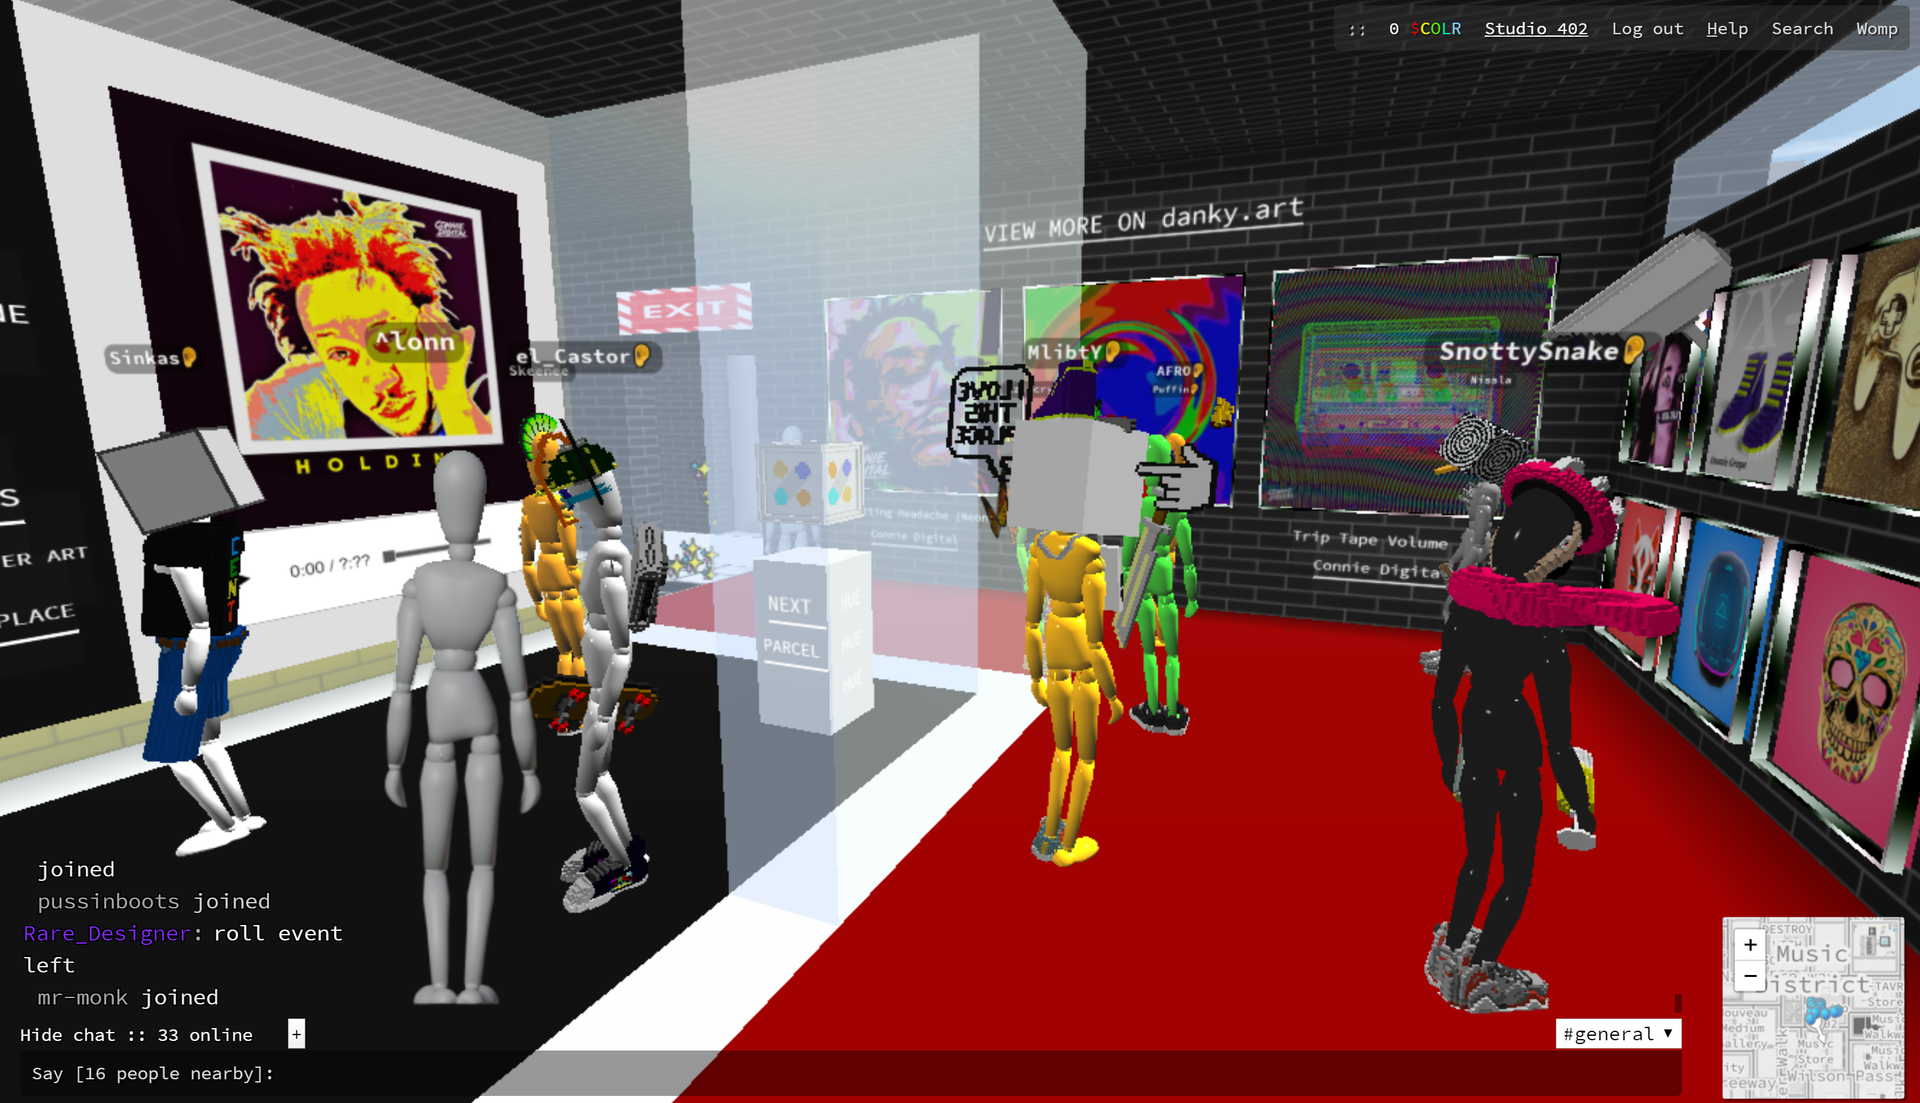 Connie Digital Virtual Art Gallery_D_Cryptovoxels